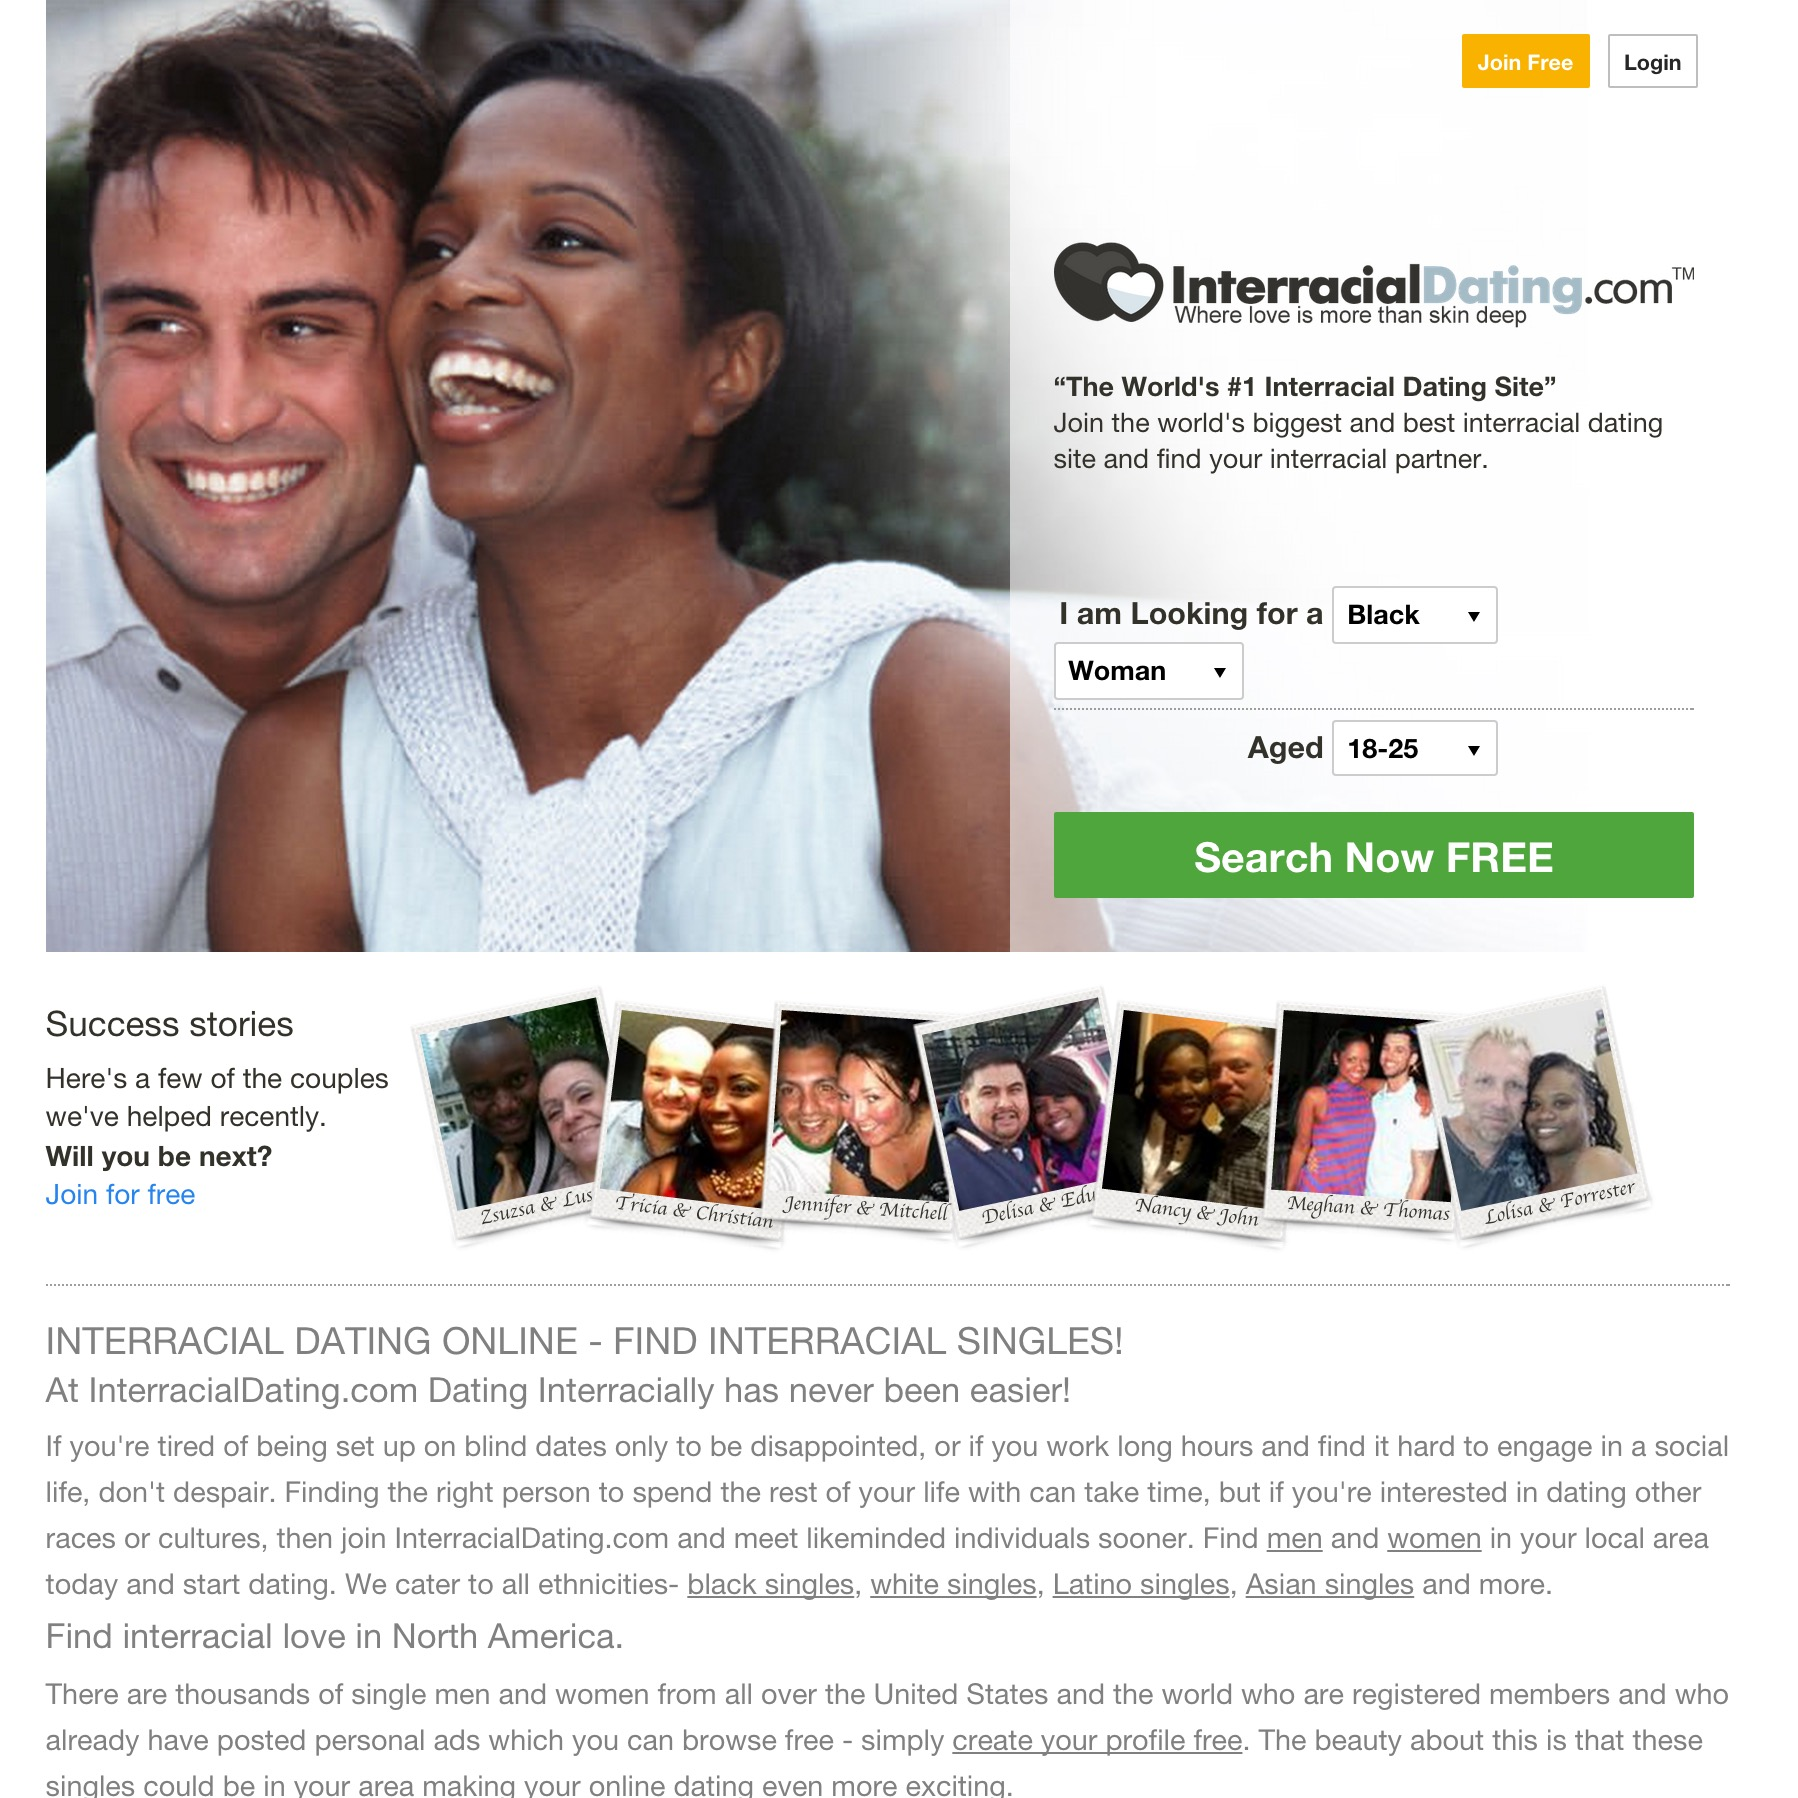 Free dating sites for interracial